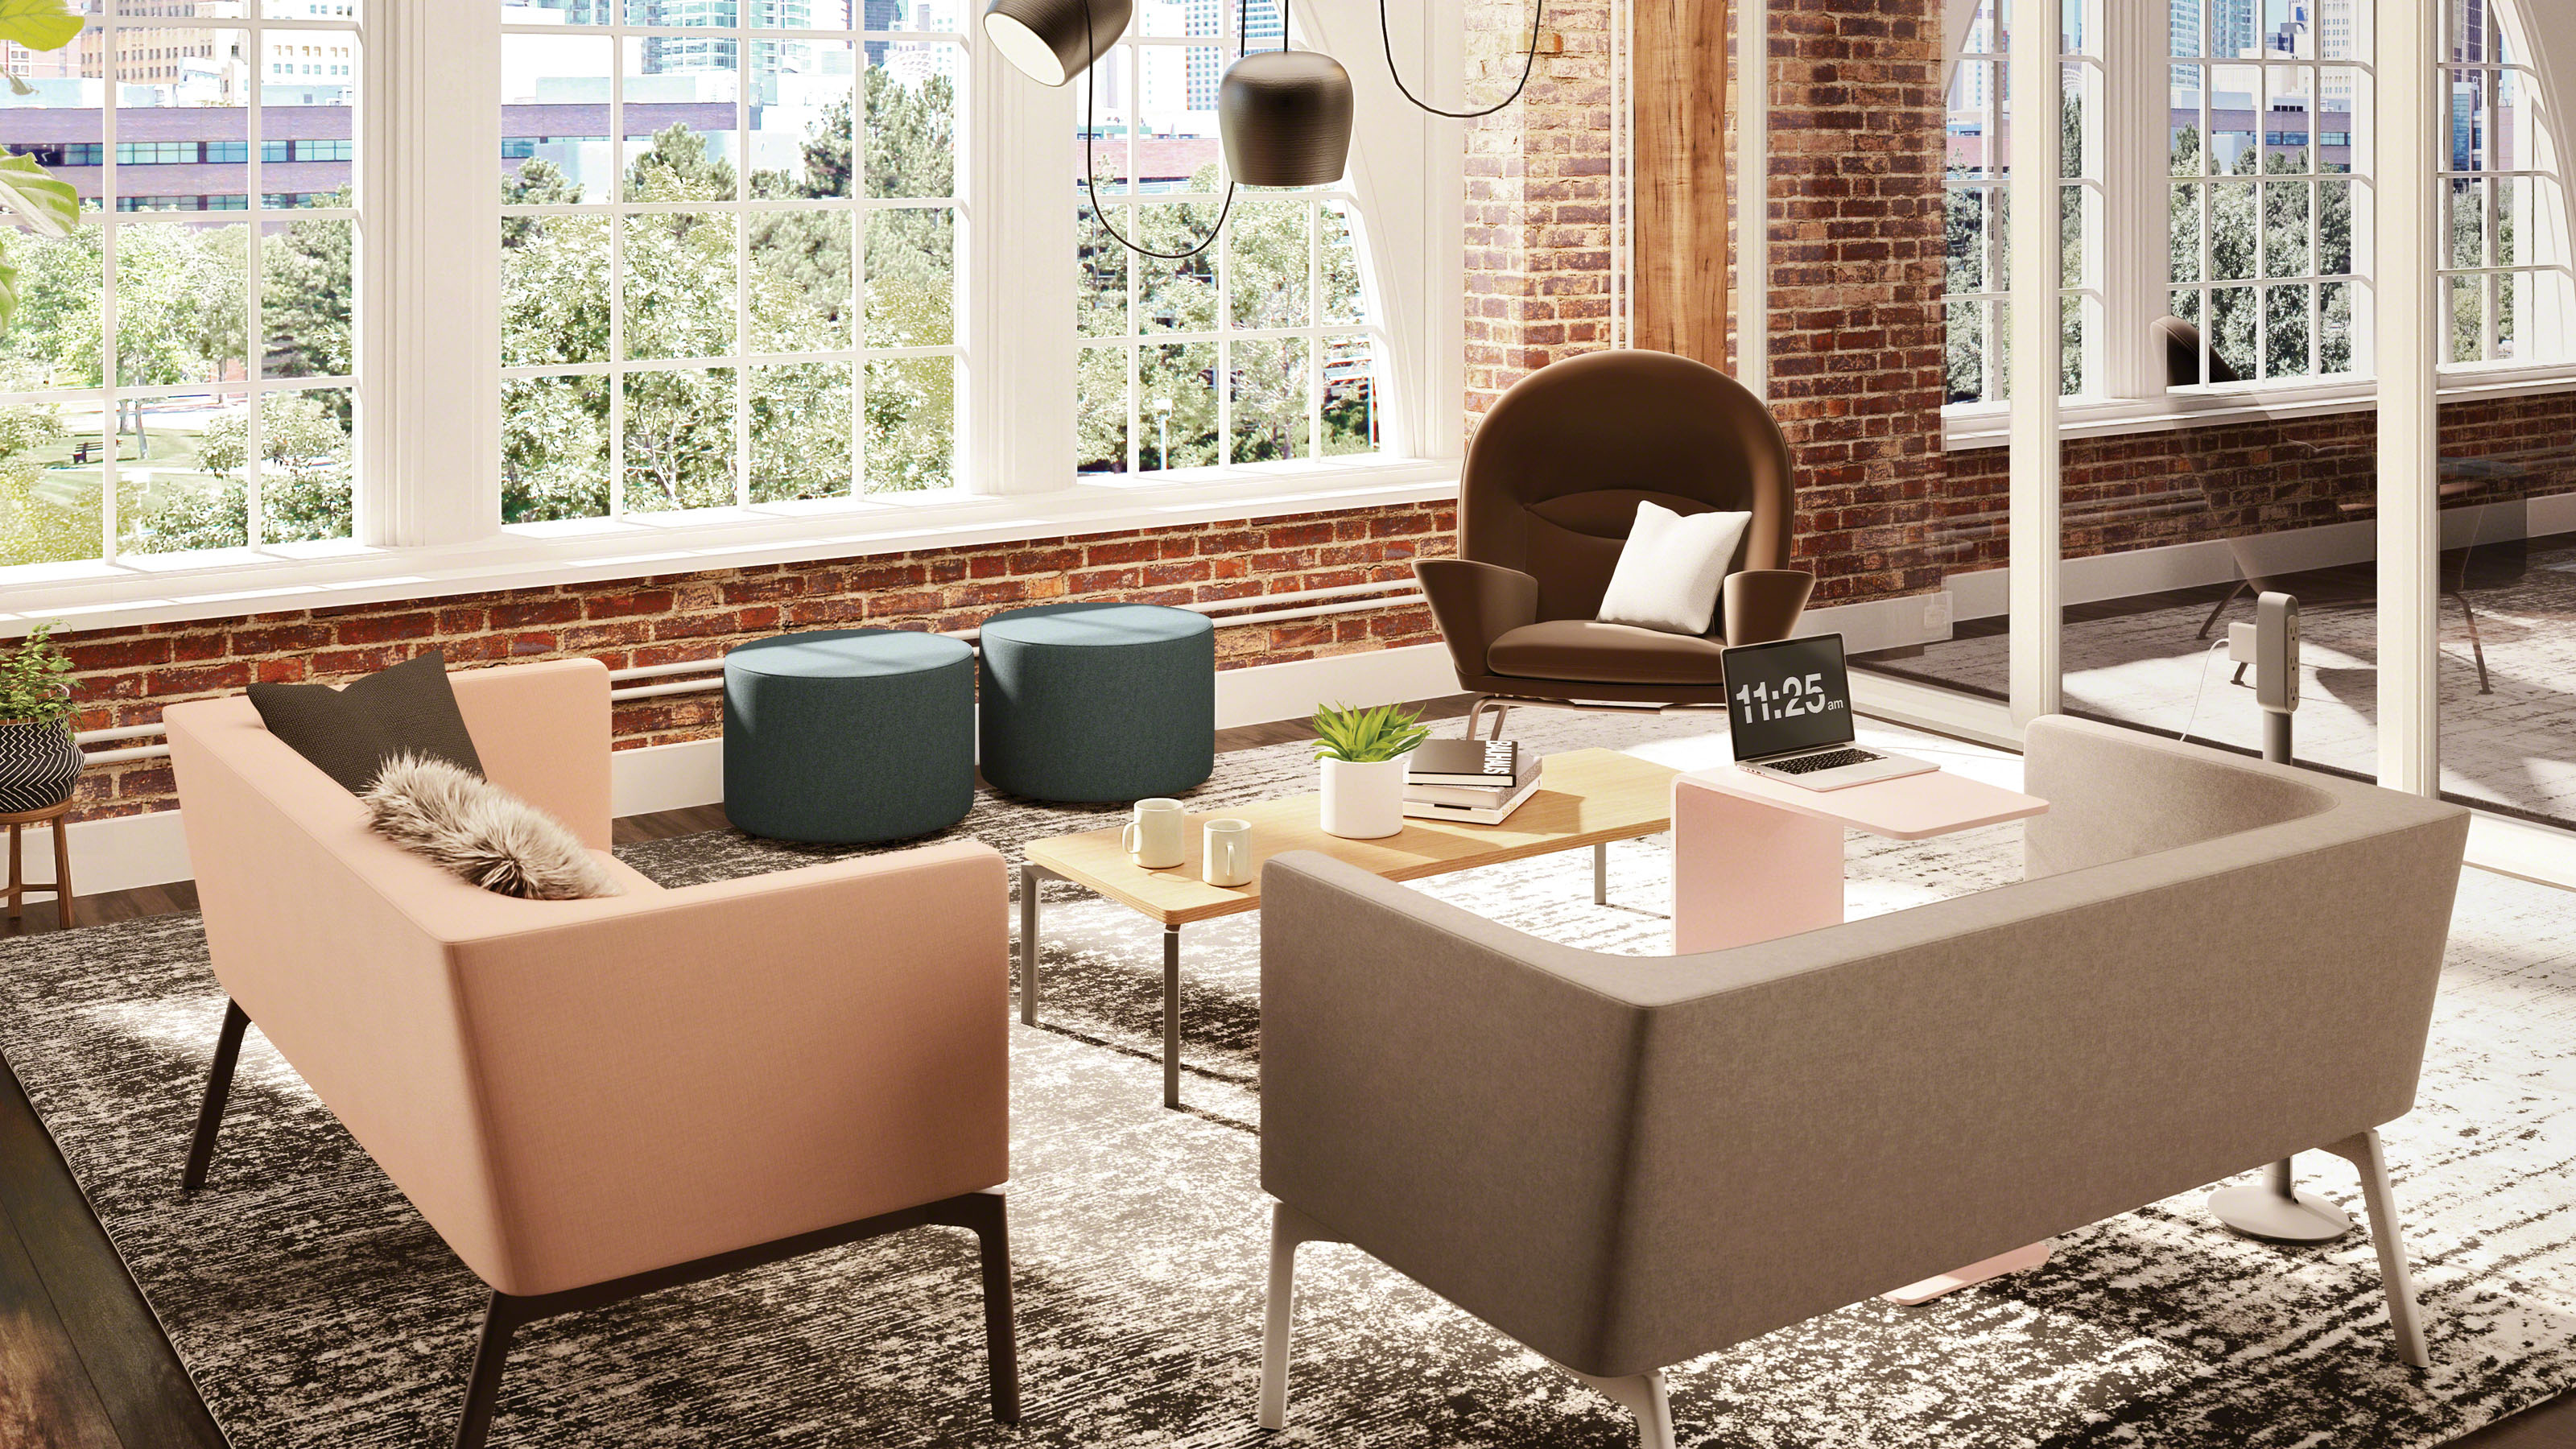 Changes to fices in a Technically Advanced Workplace Steelcase